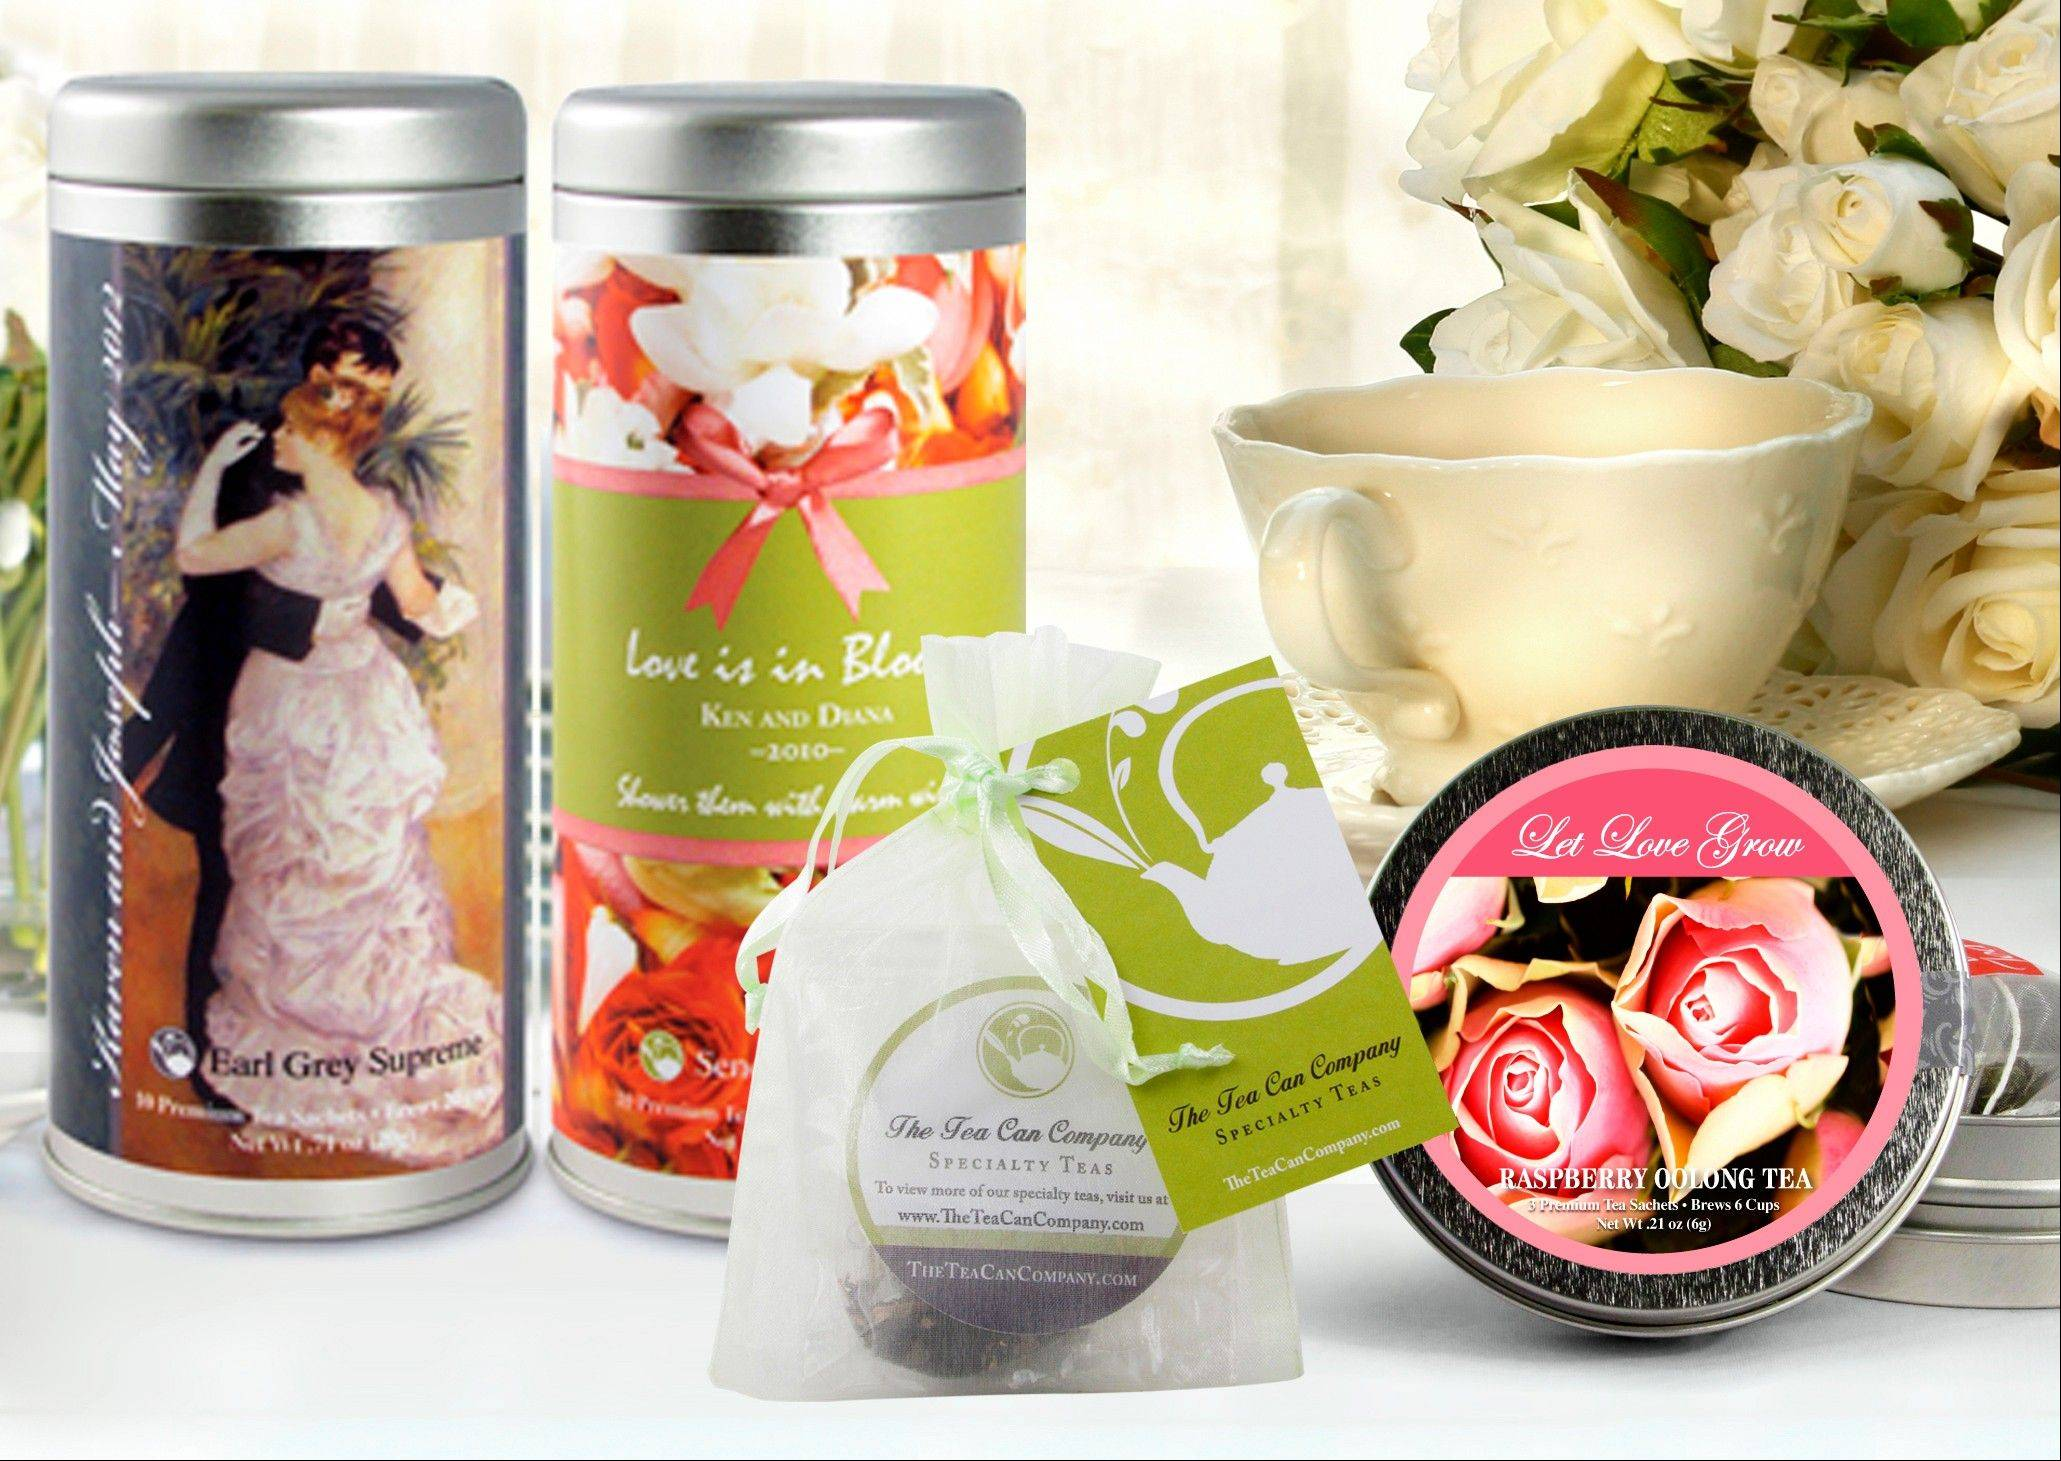 The Tea Can Company showcases Wedding Tea Specials, a range of personalized products offered by The Tea Can Company, from left, Tall Tins, Organza bags and Mini Tins, for weddings and bridal showers. The wedding favor, that little thank-you-for-coming gift, has risen to new heights with the bride and groom giving guests a wide range of favors that are meaningful to them.